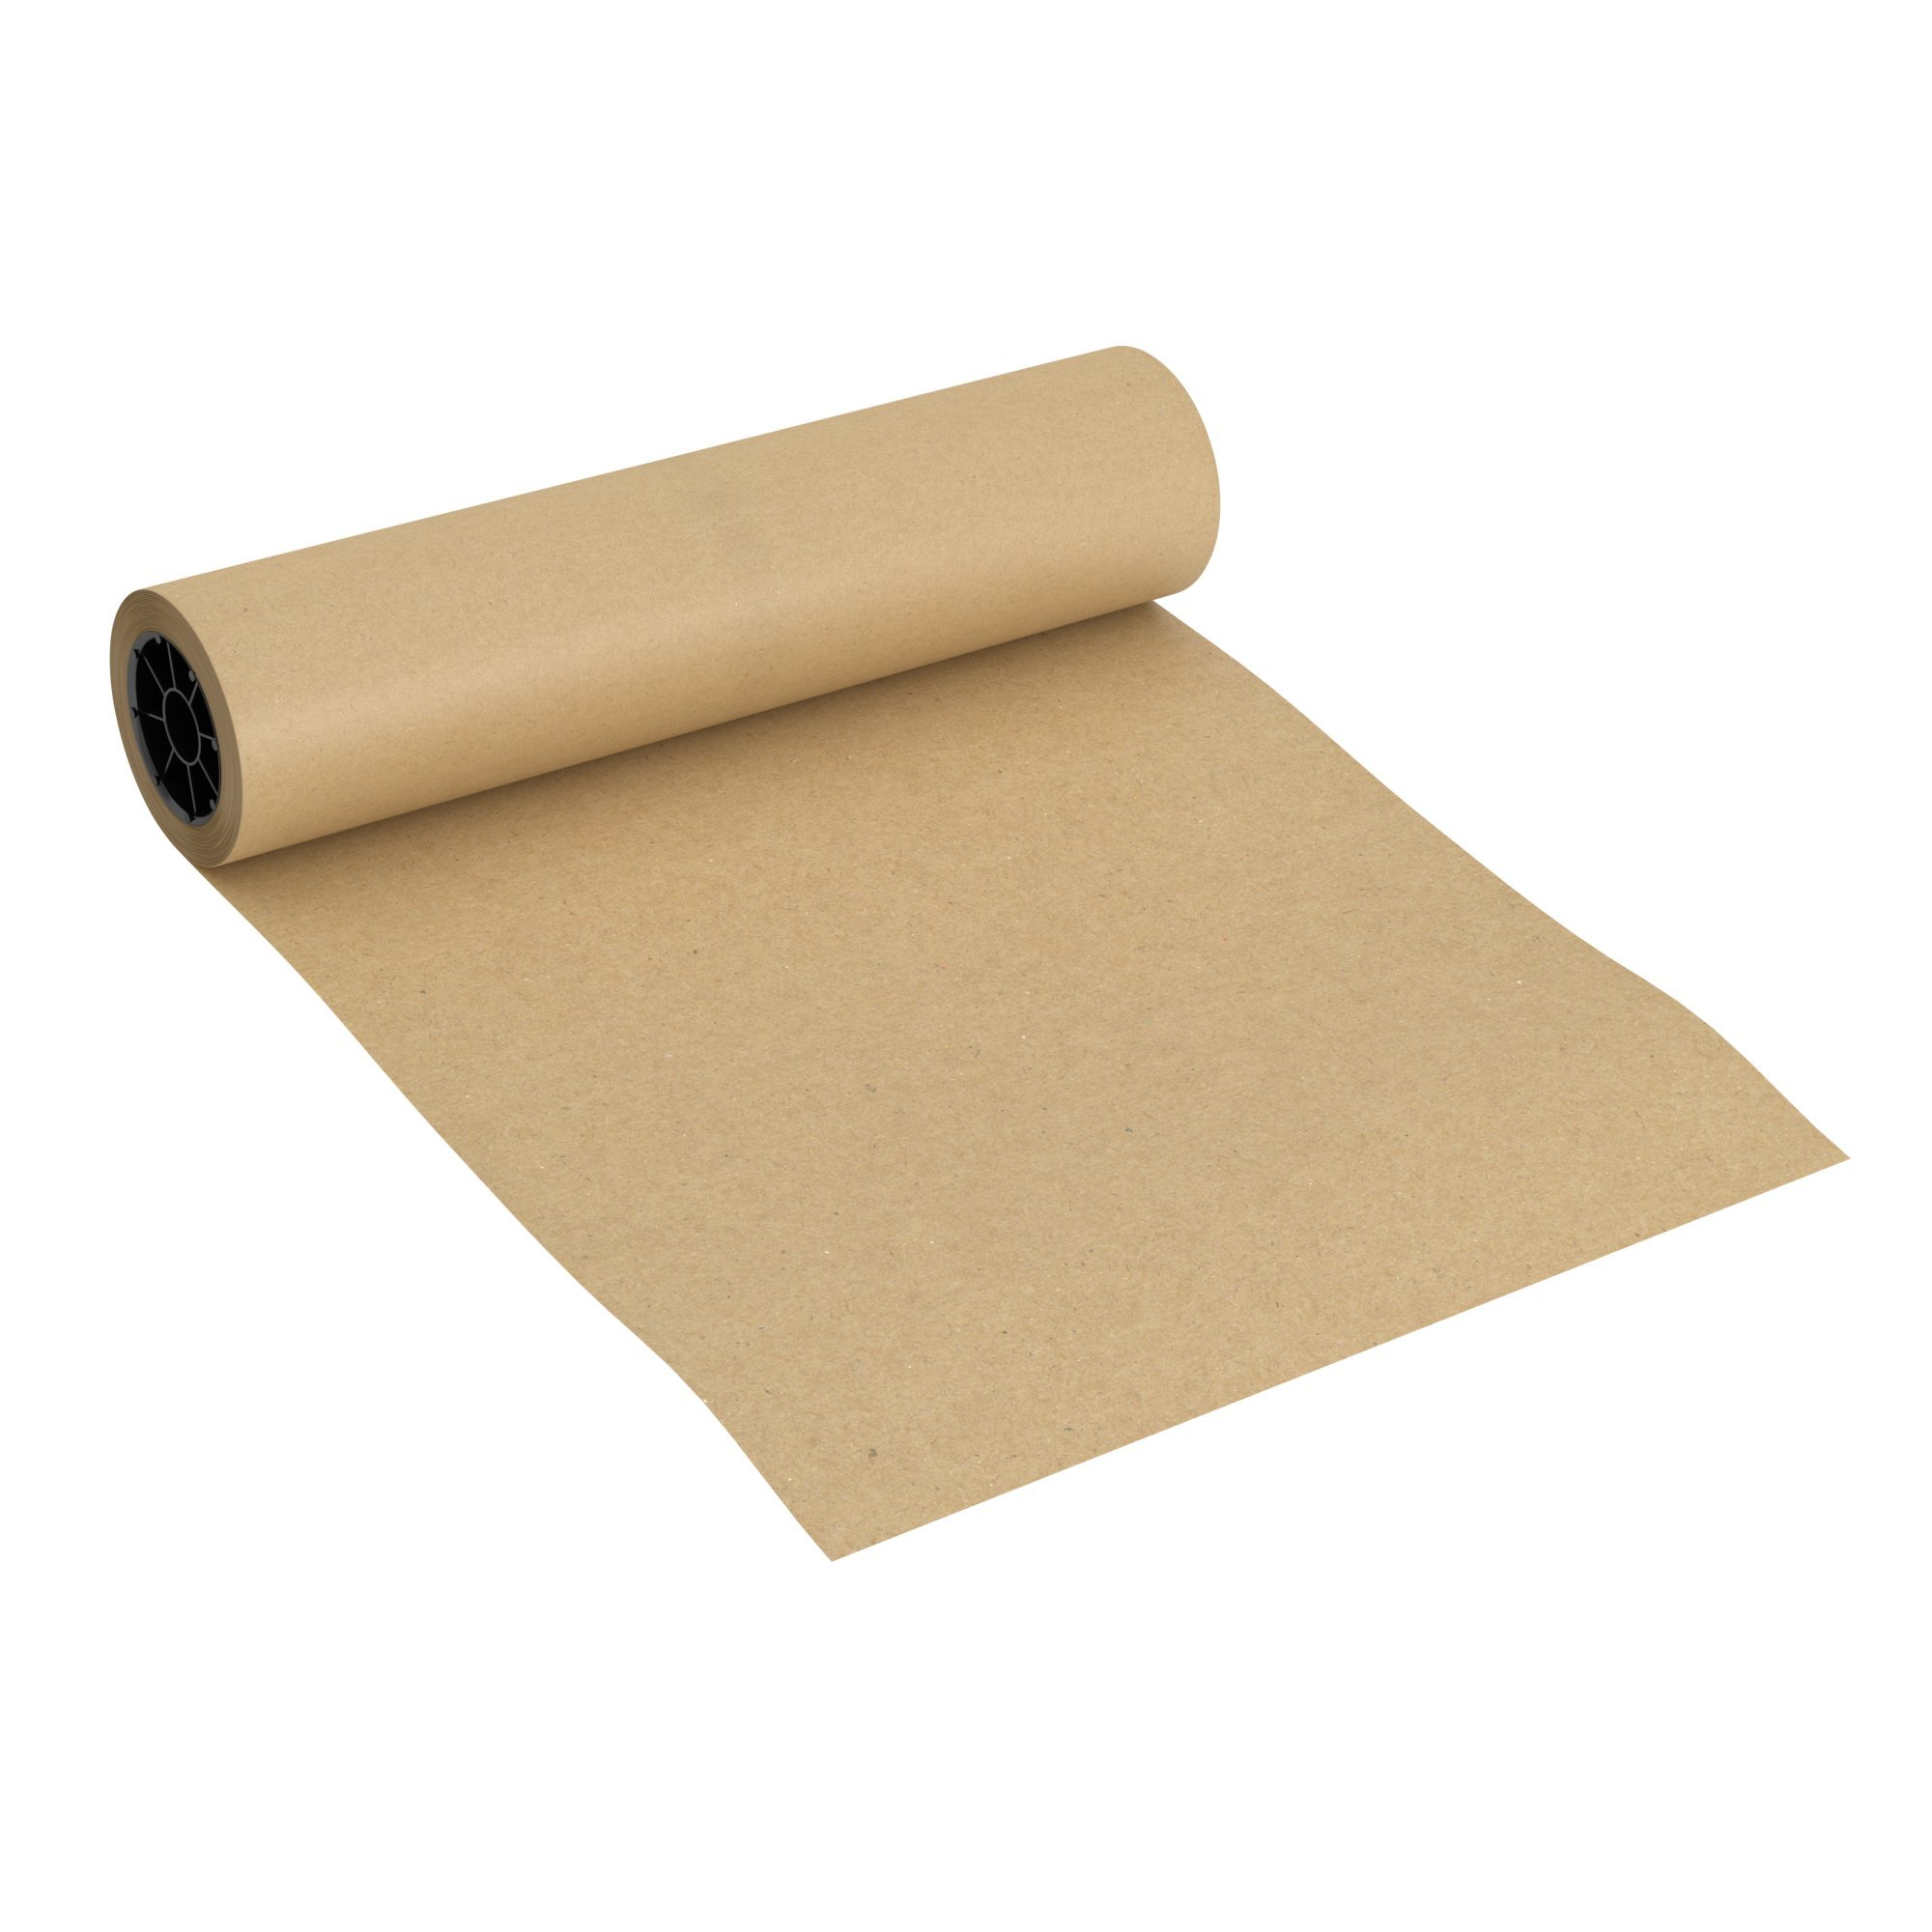 Brown Jumbo Kraft Paper Roll - 18'' x 2100'' (175') Made in The USA - Ideal for Packing, Moving, Gift Wrapping, Postal, Shipping, Parcel, Wall Art, Crafts, Bulletin Boards, Floor Covering, Table Runner